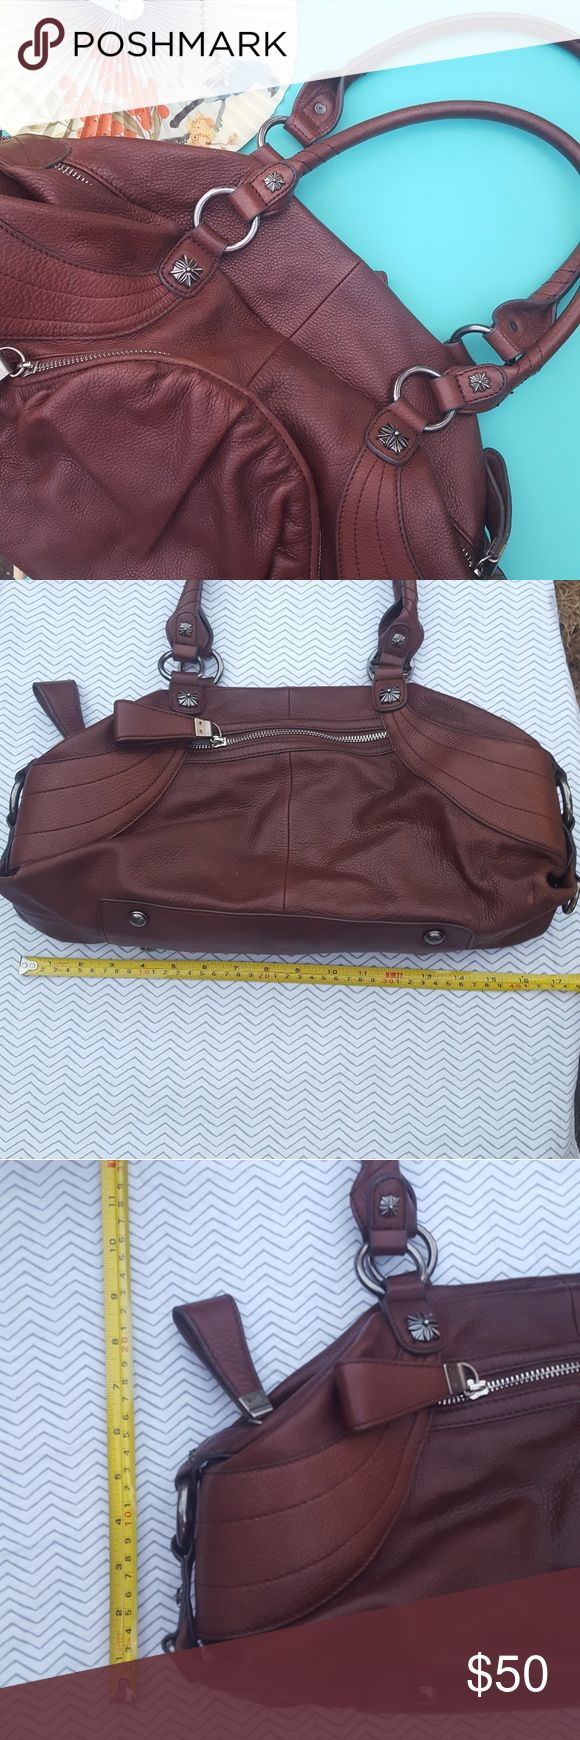 B Makowsky Handbag Brown leather B Makowsky Handbag. Small pocket in front and back. Pen mark and small spot noted in last 2 pics. A solid purse! B Makowsky Bags Shoulder Bags